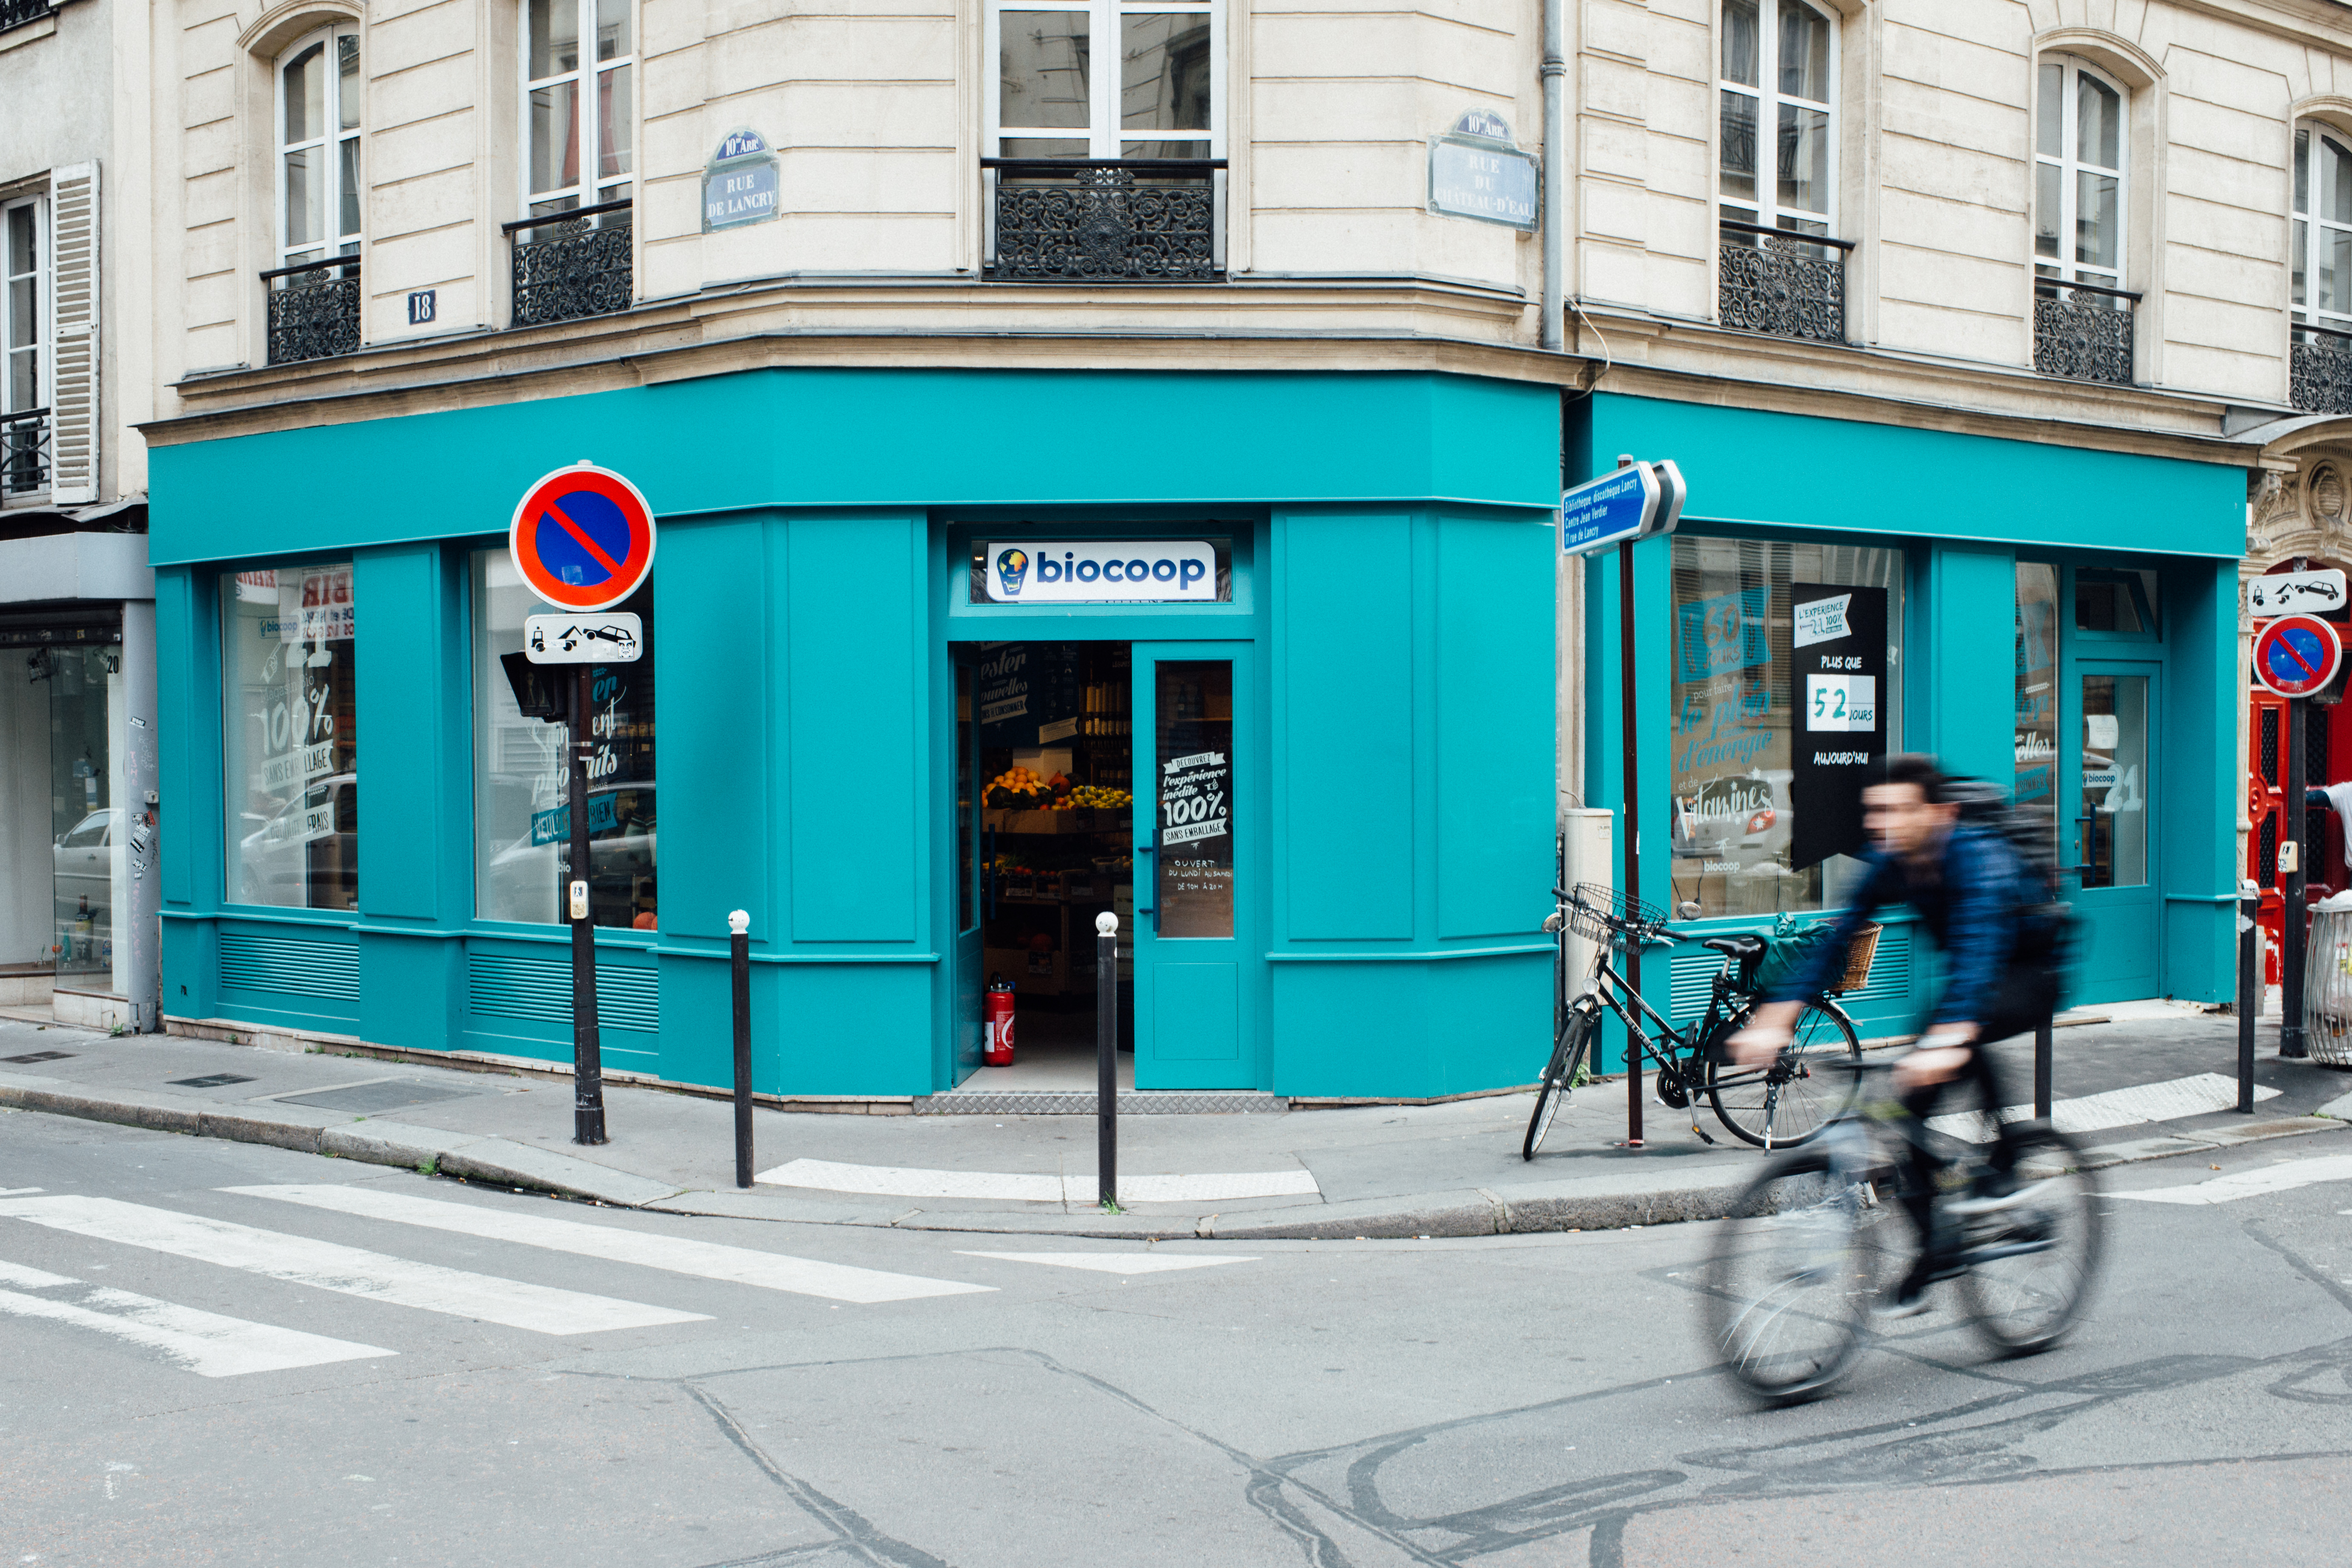 HiP Paris blog. BioCoop 21, Paris' first bag-free organic bulk shop. The bright façade draws the eye and invites you in.